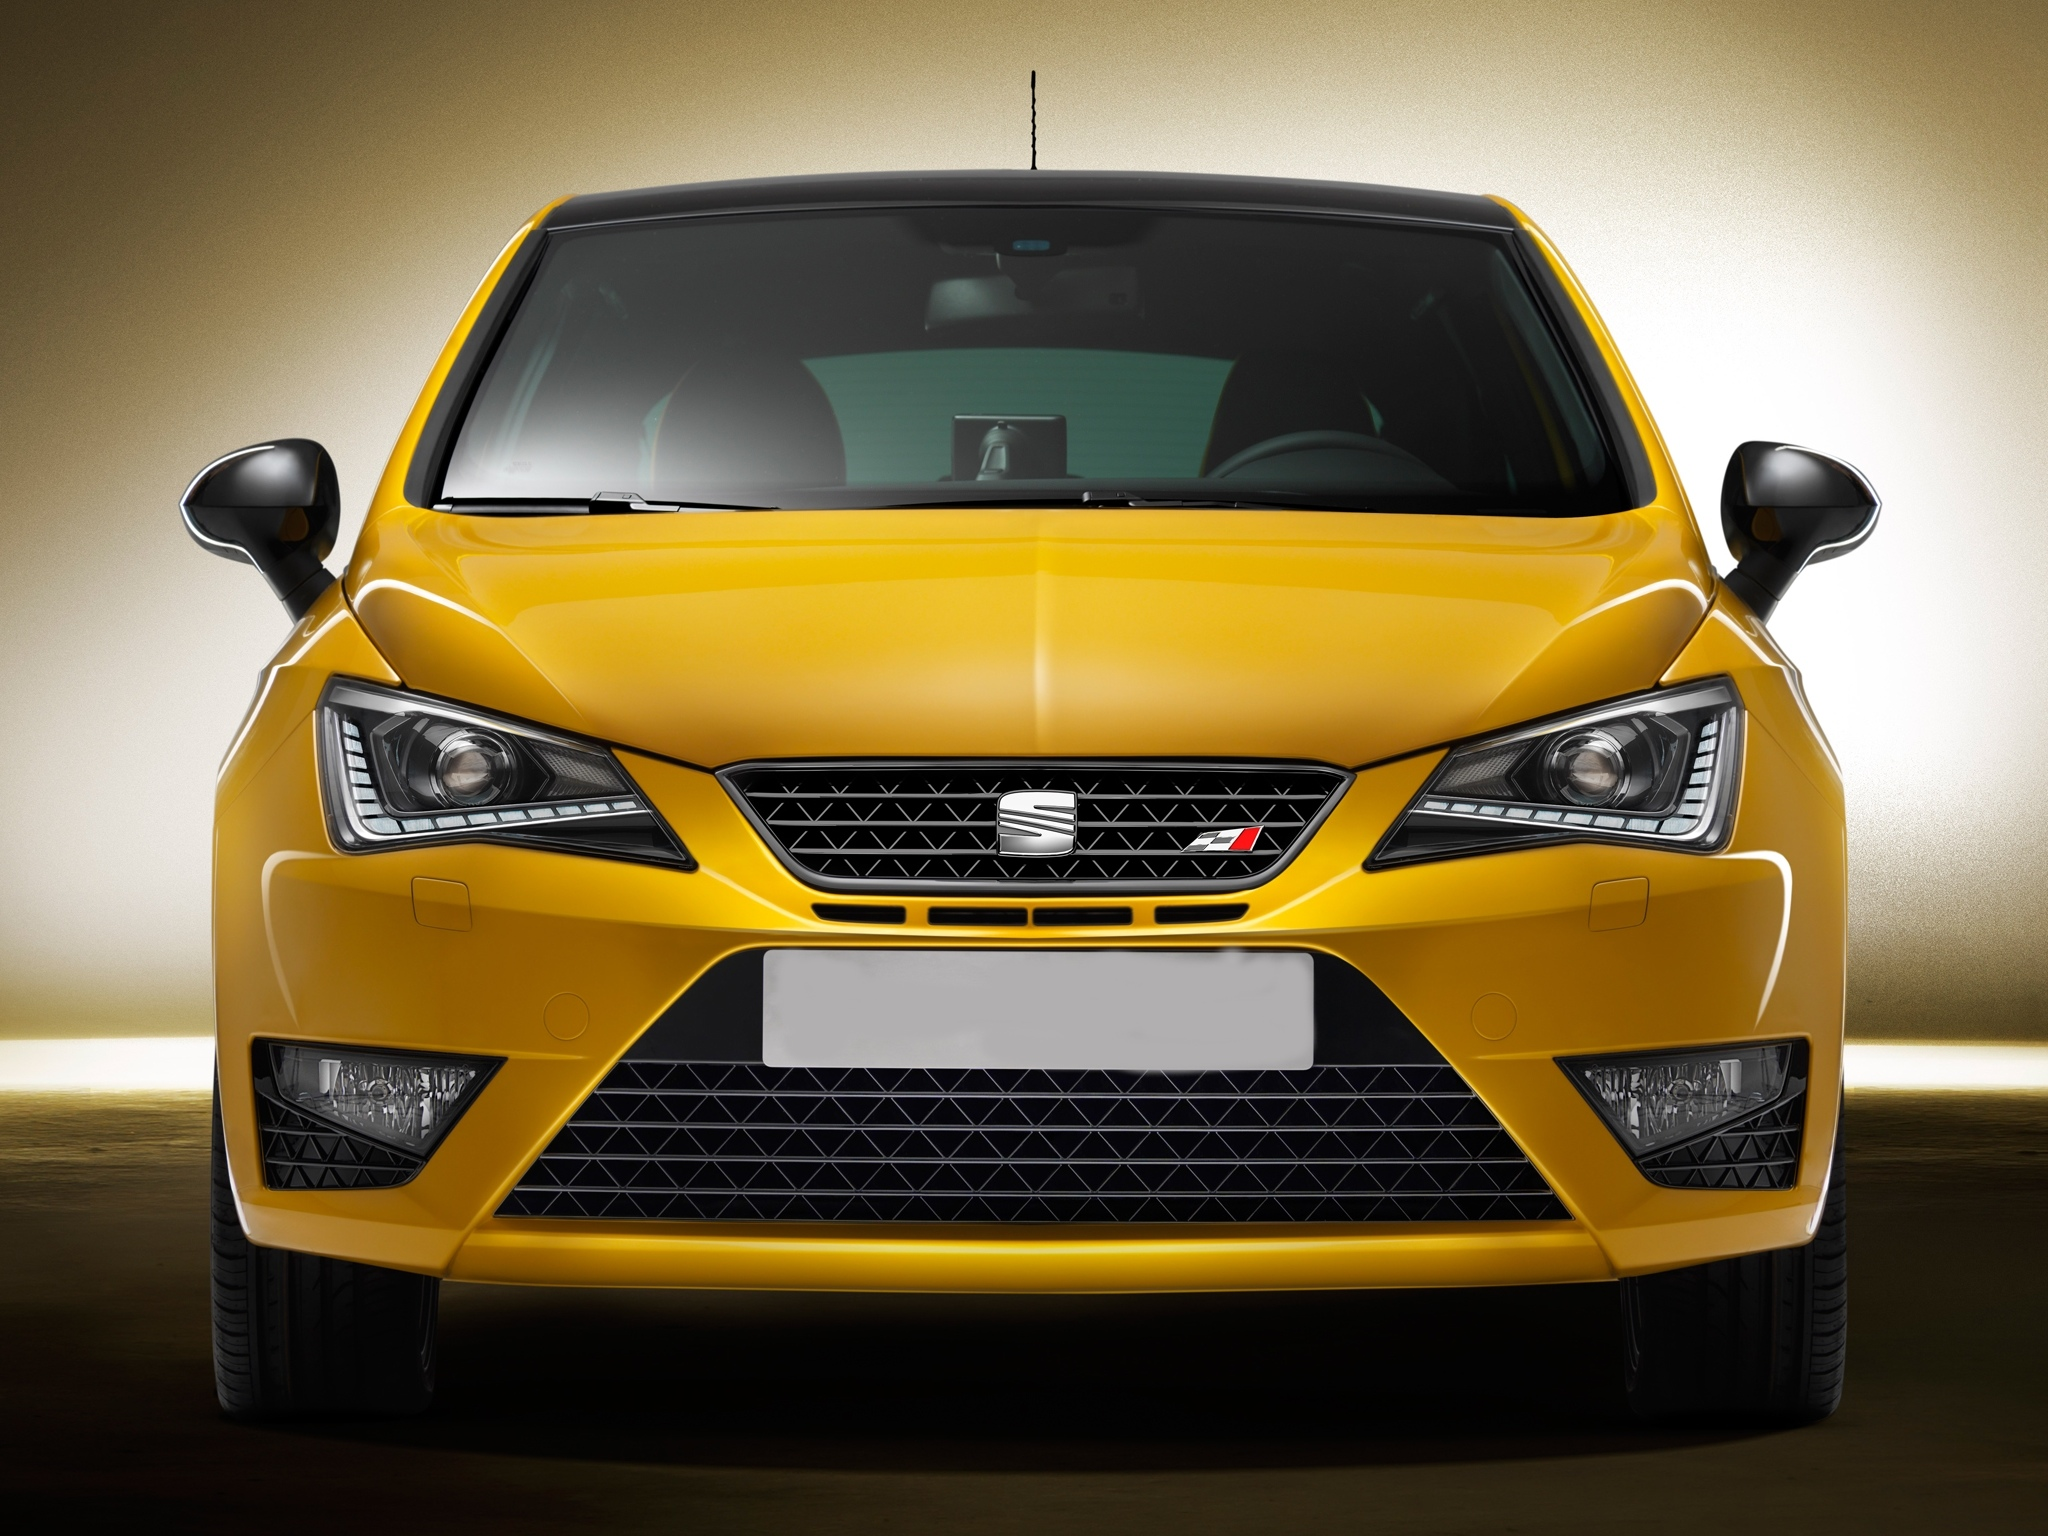 2016 seat ibiza st pictures information and specs. Black Bedroom Furniture Sets. Home Design Ideas